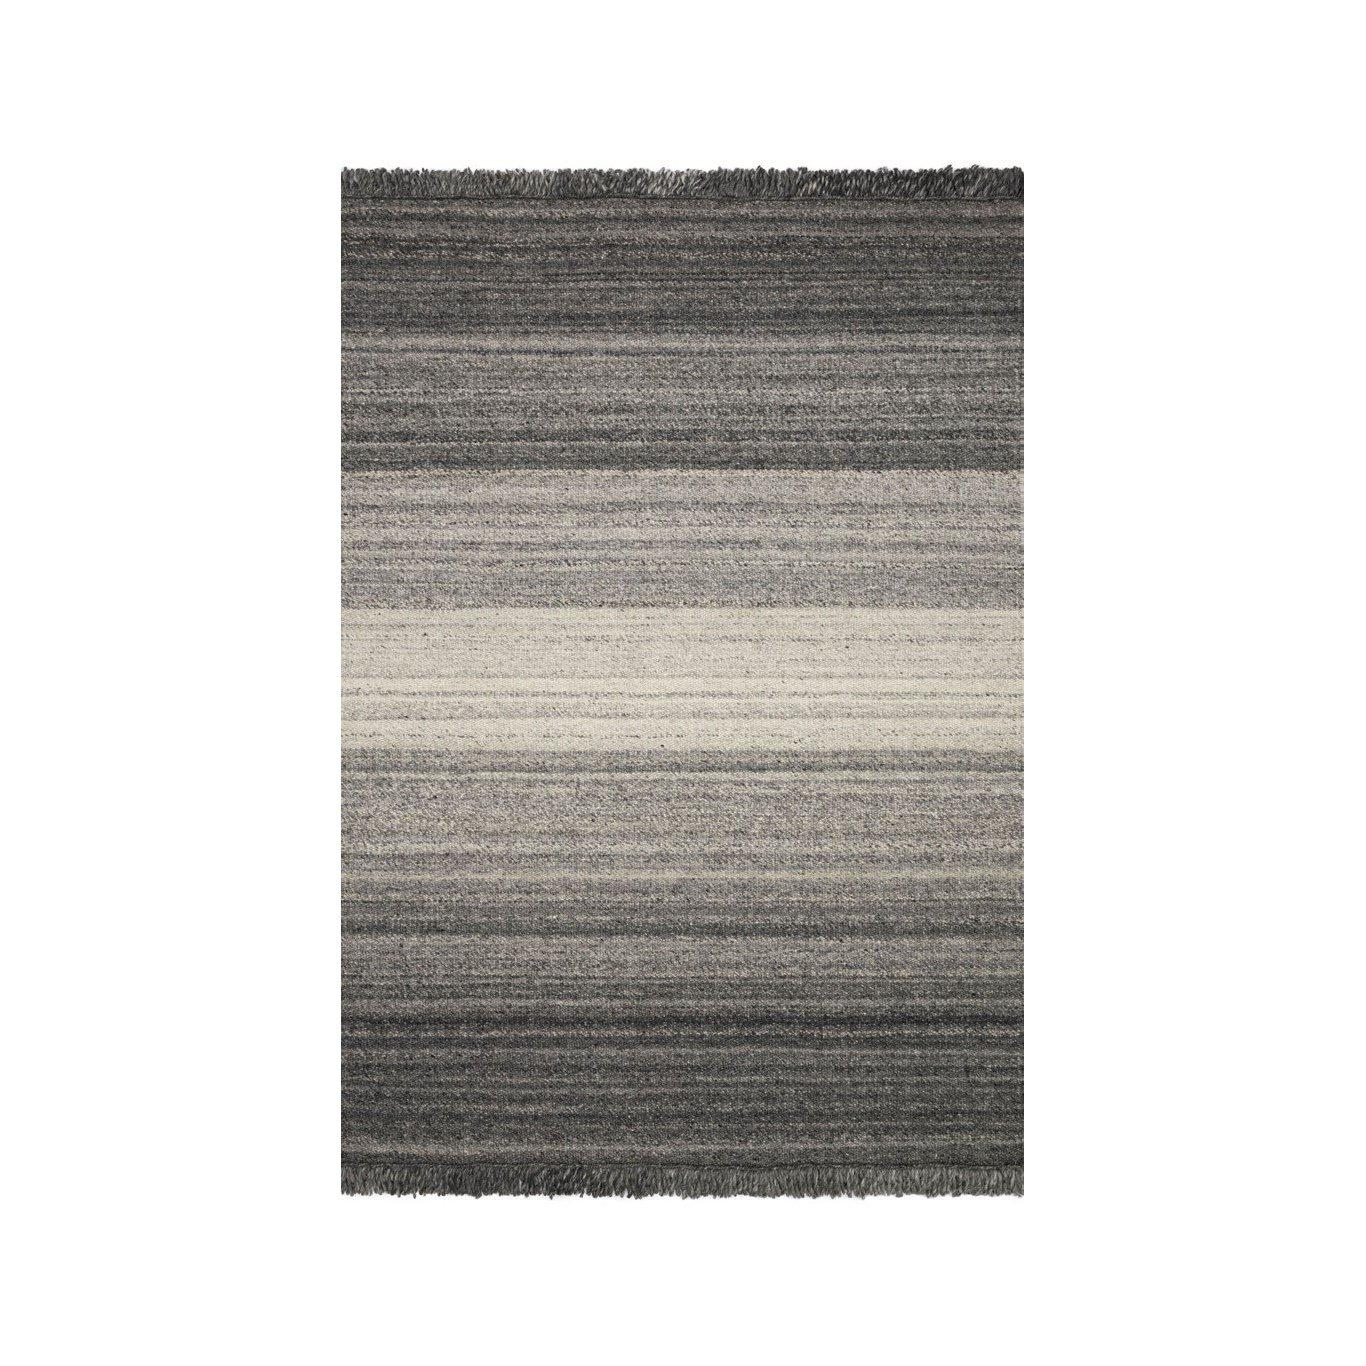 Joanna Gaines Phillip Rug Collection - PK-01 Grey-Loloi Rugs-Blue Hand Home